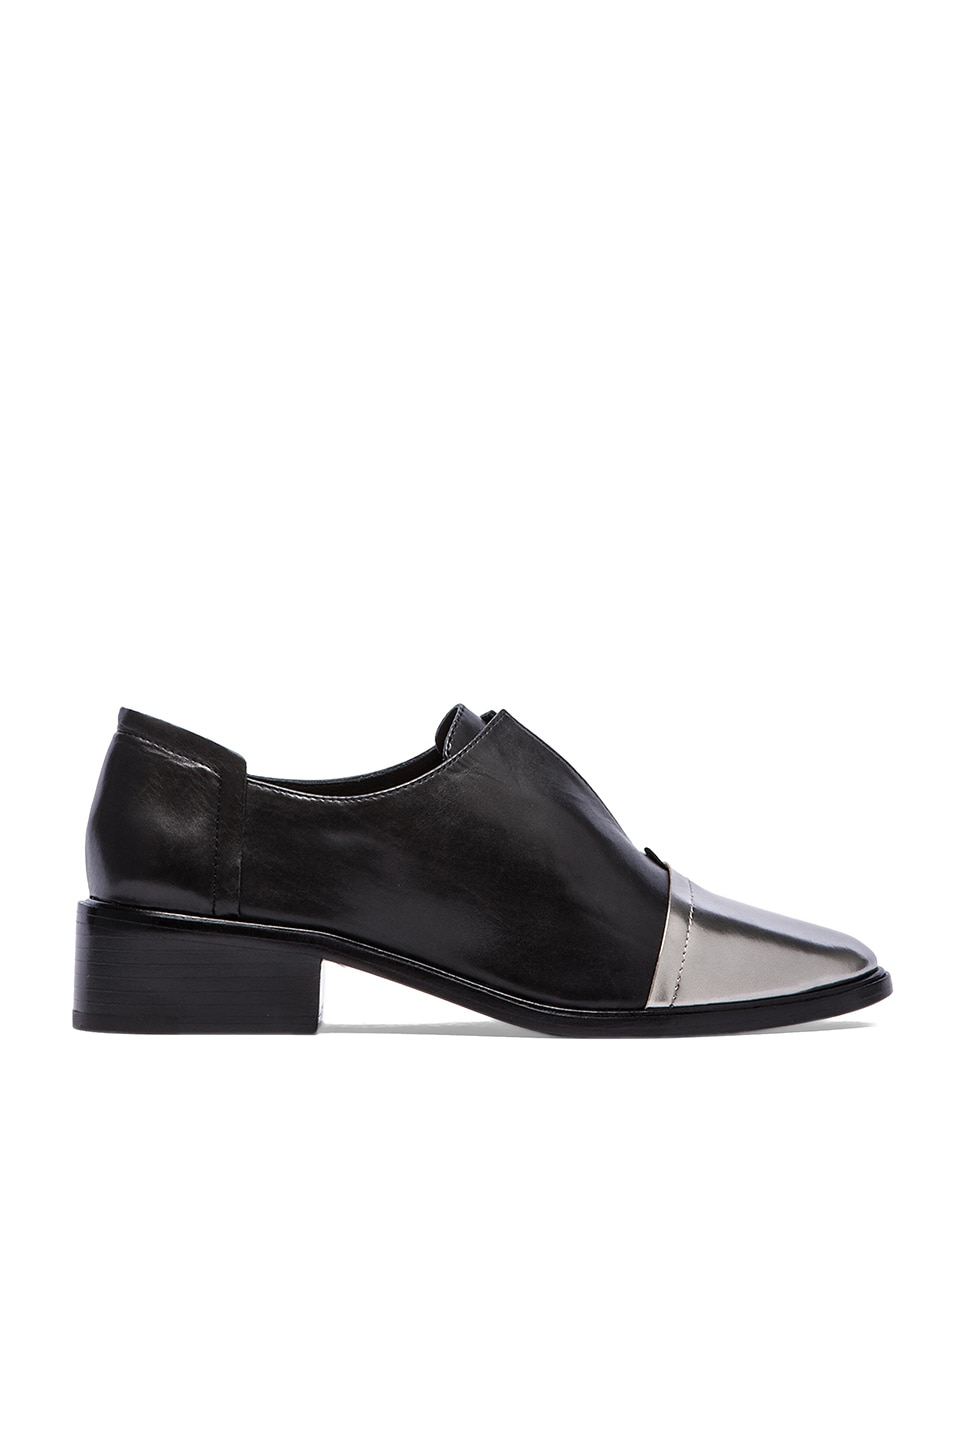 RACHEL ZOE Raven Oxford in Black & Alluminum